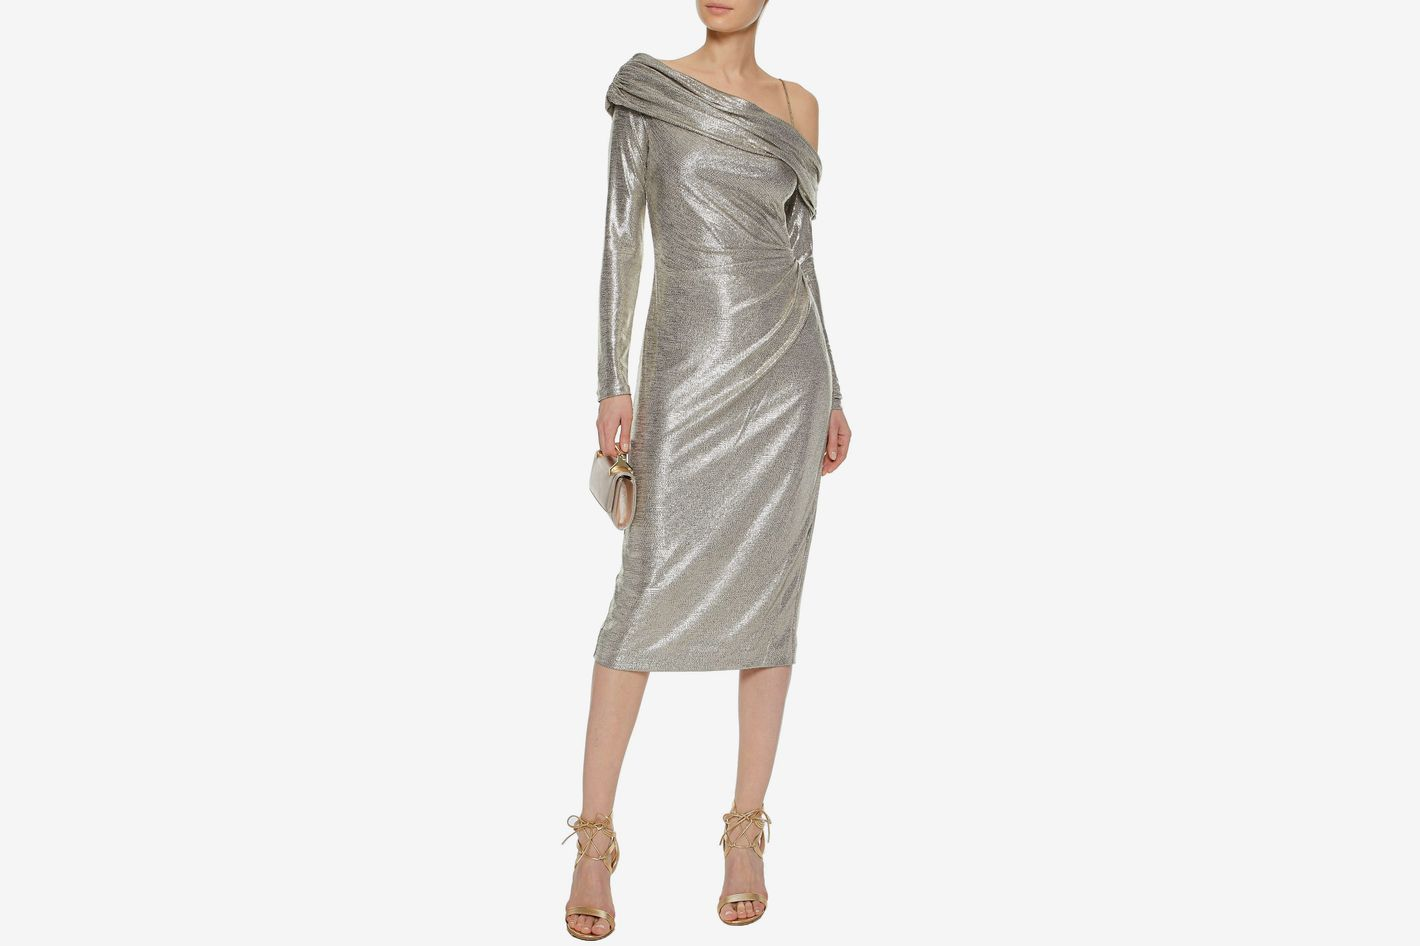 Rachel Zoe Cold-shoulder Metallic Ruched Dress